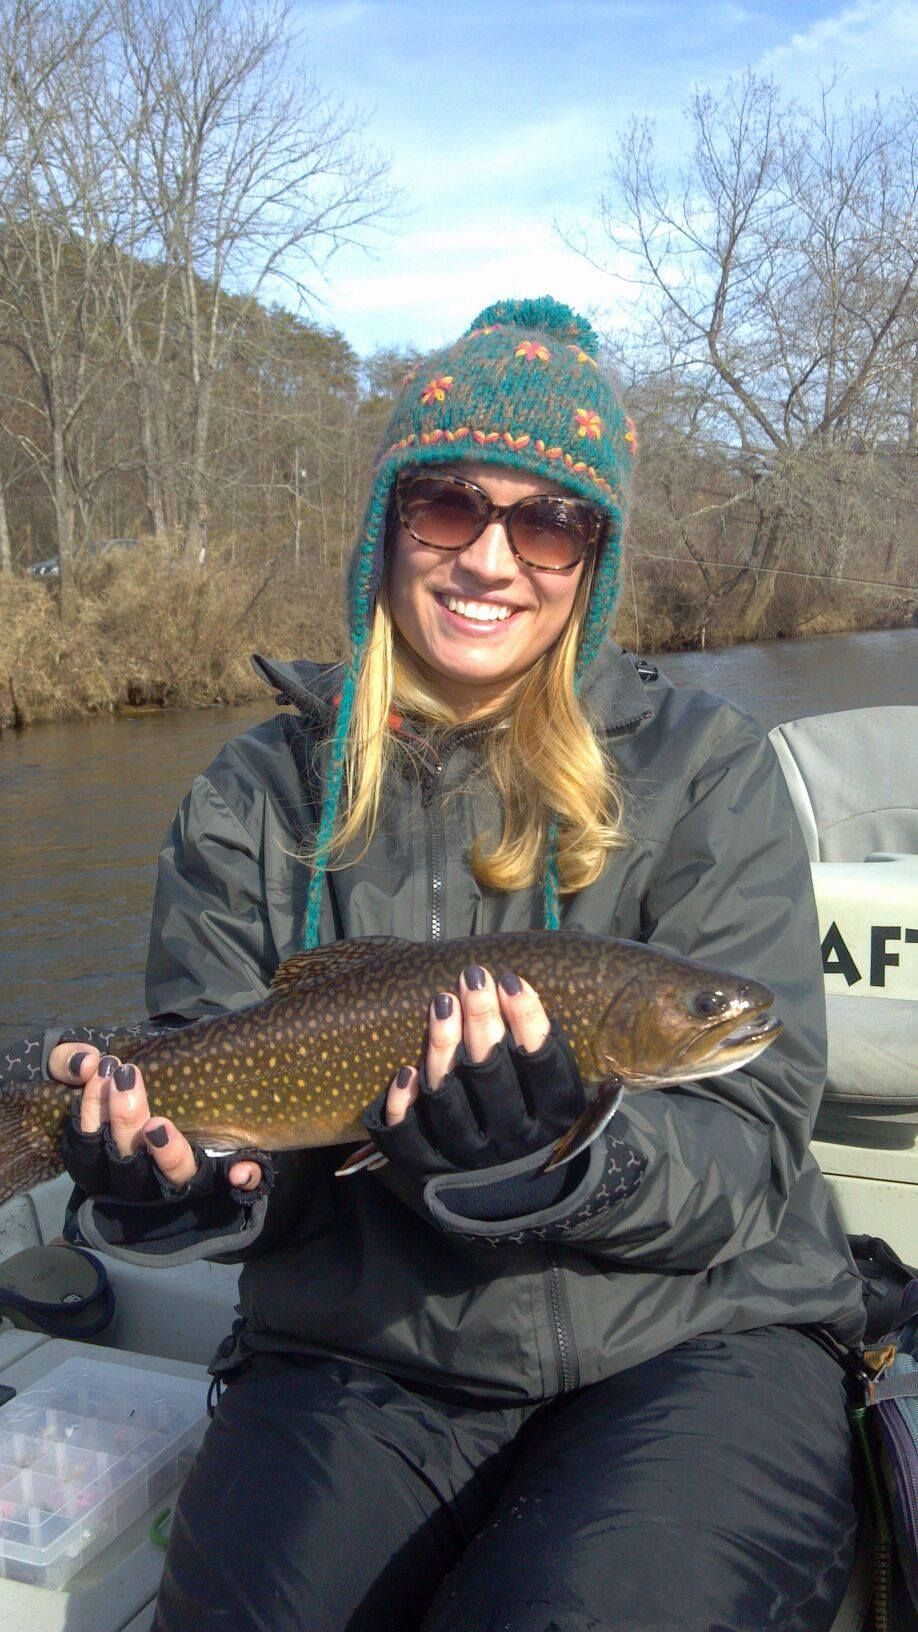 Unicoi Outfitters North Georgia S Premier Fly Shop Guide Service North Georgia North Georgia Mountains Fly Fishing